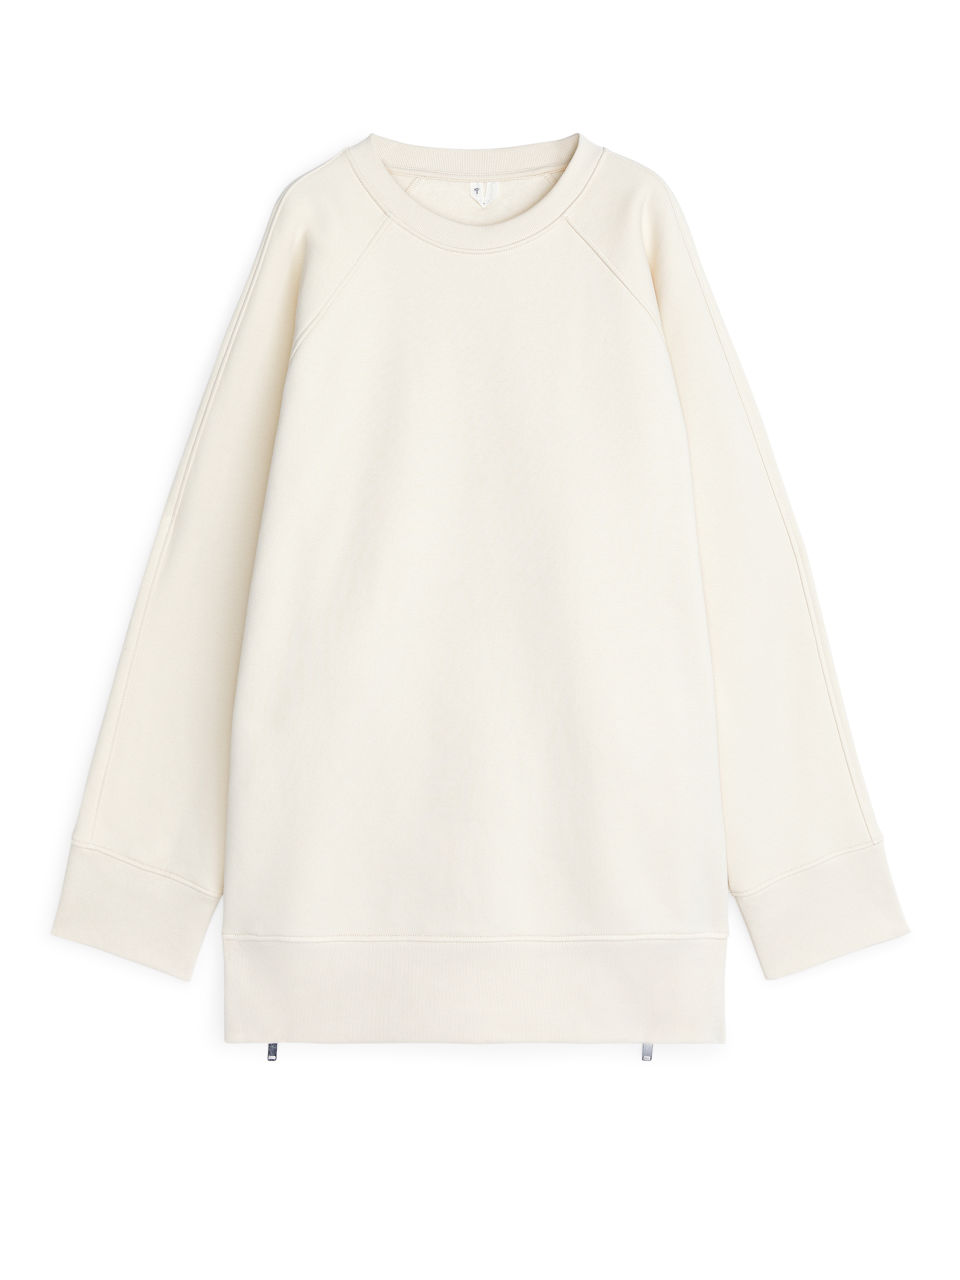 Beige Tops Sweatshirt Arket Light Oversized qzVpSUM